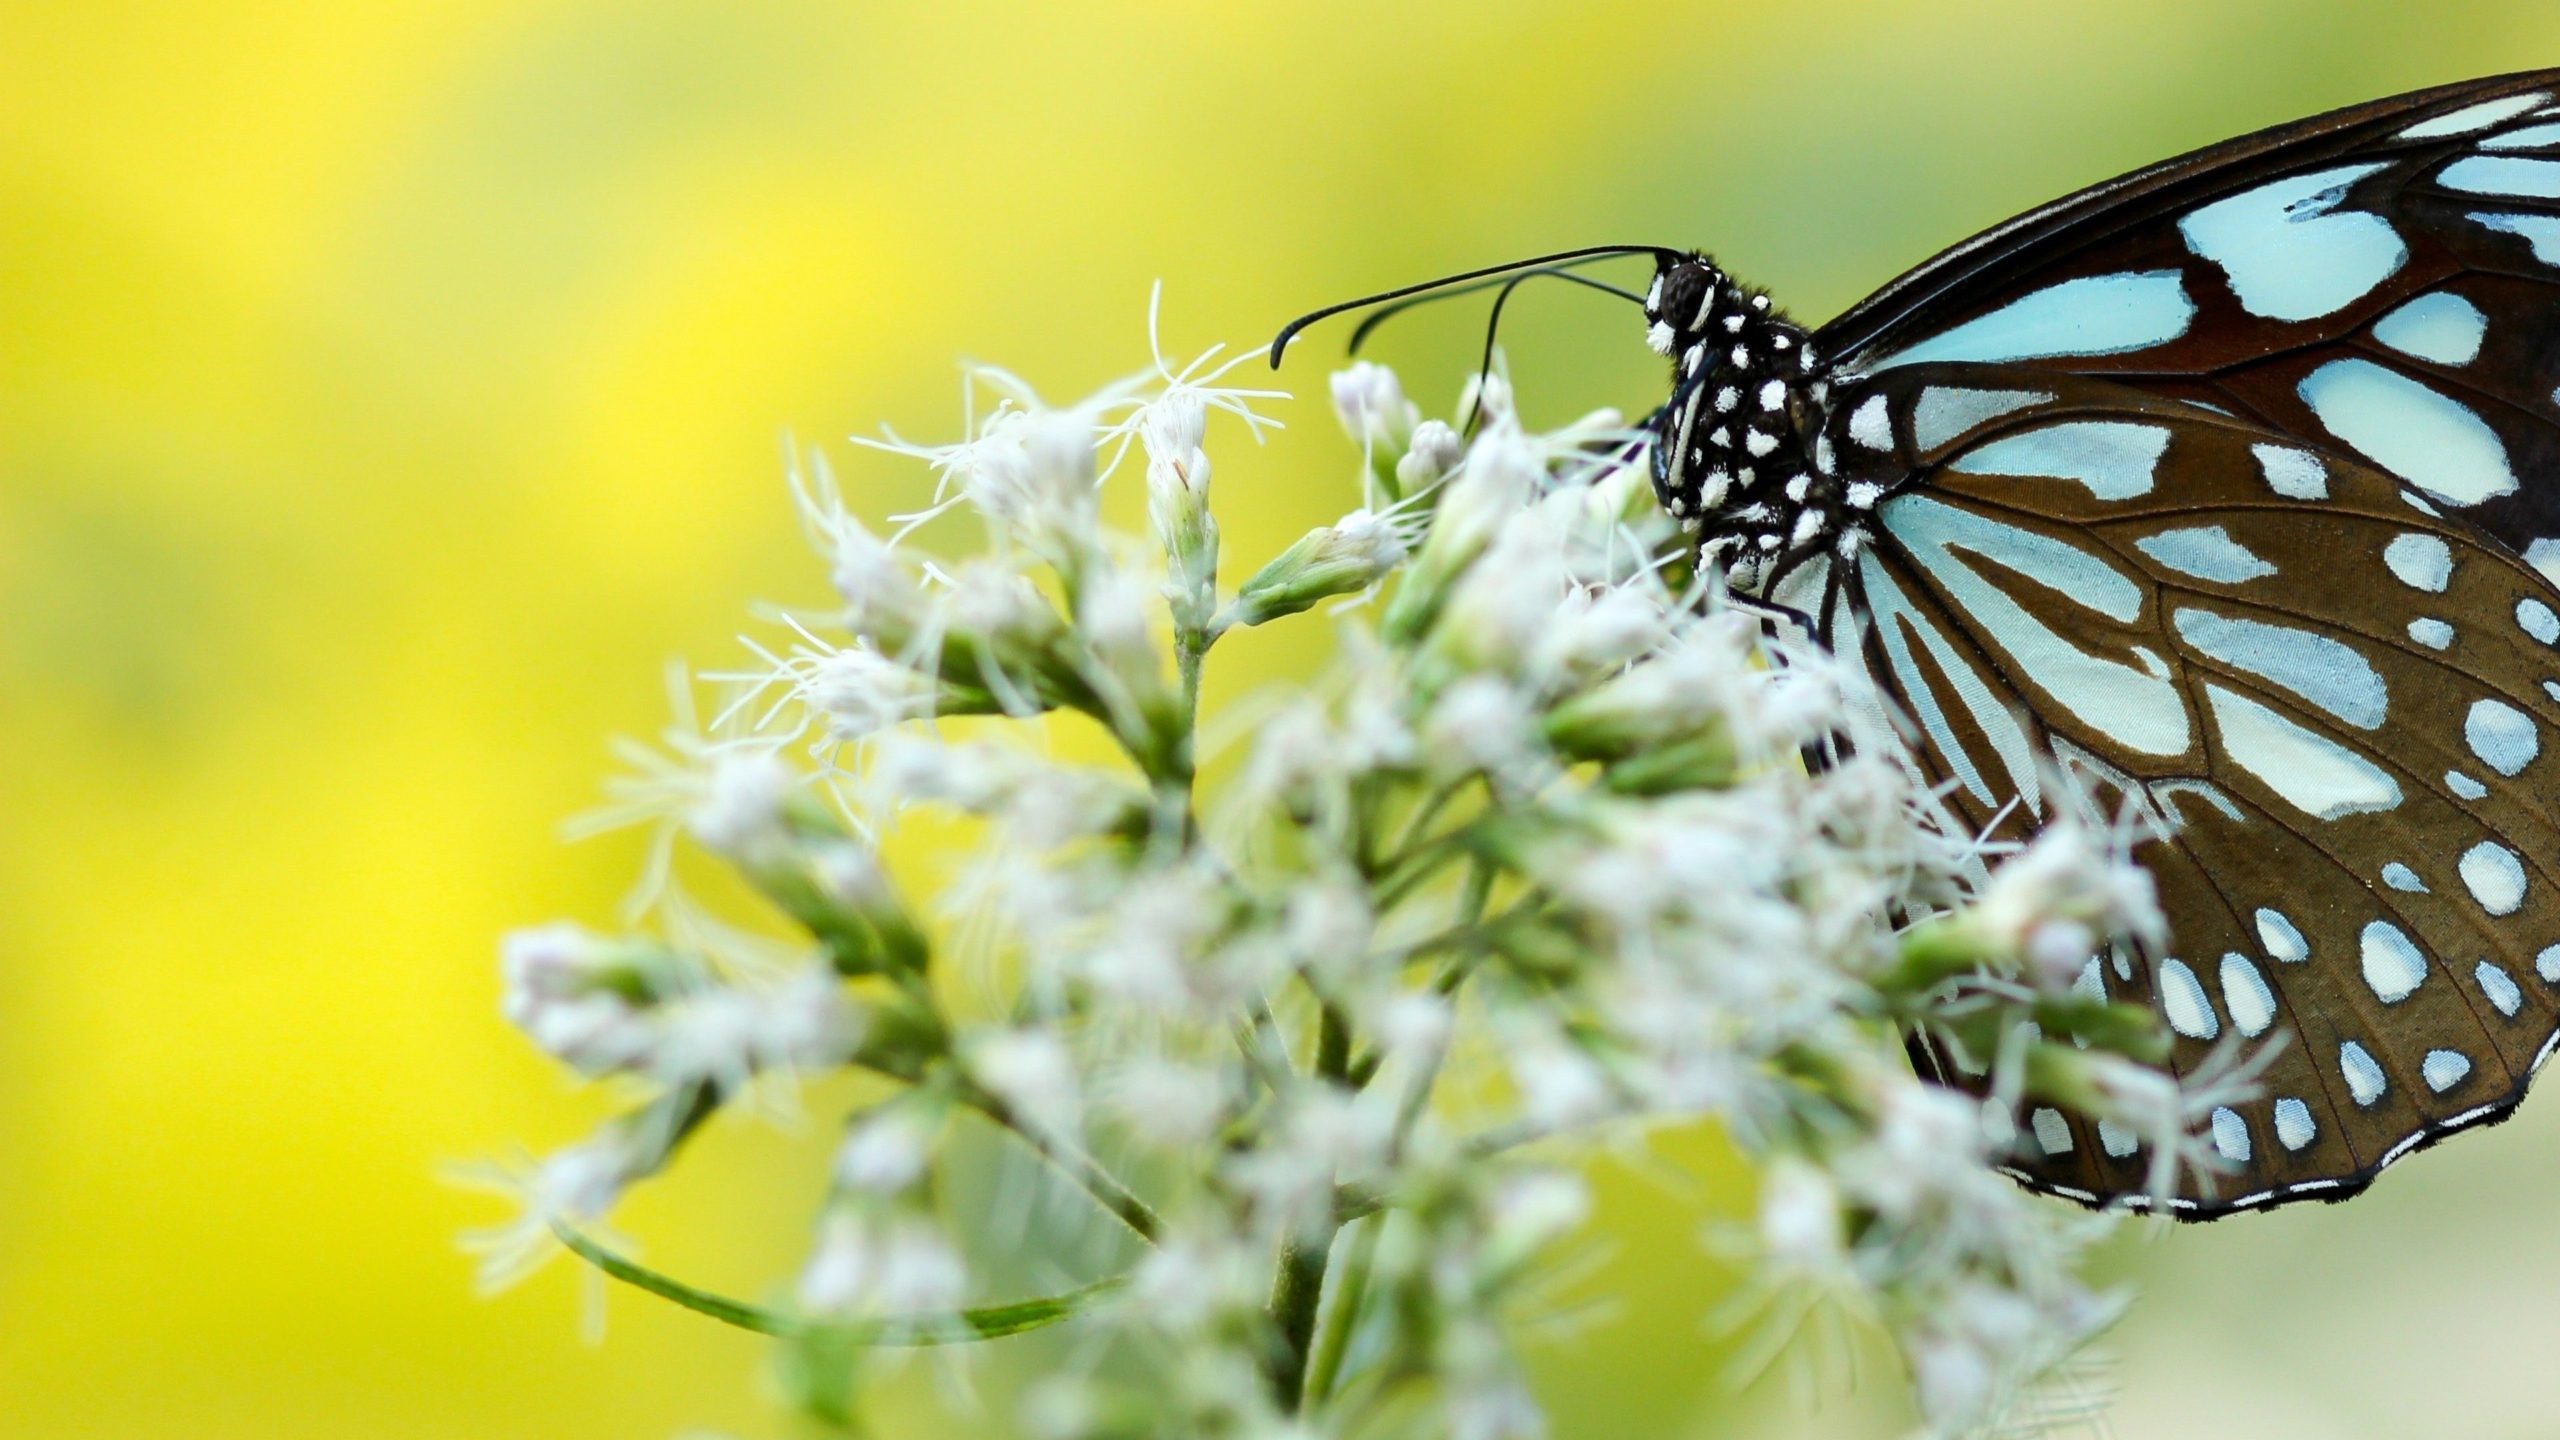 hd images of butterfly